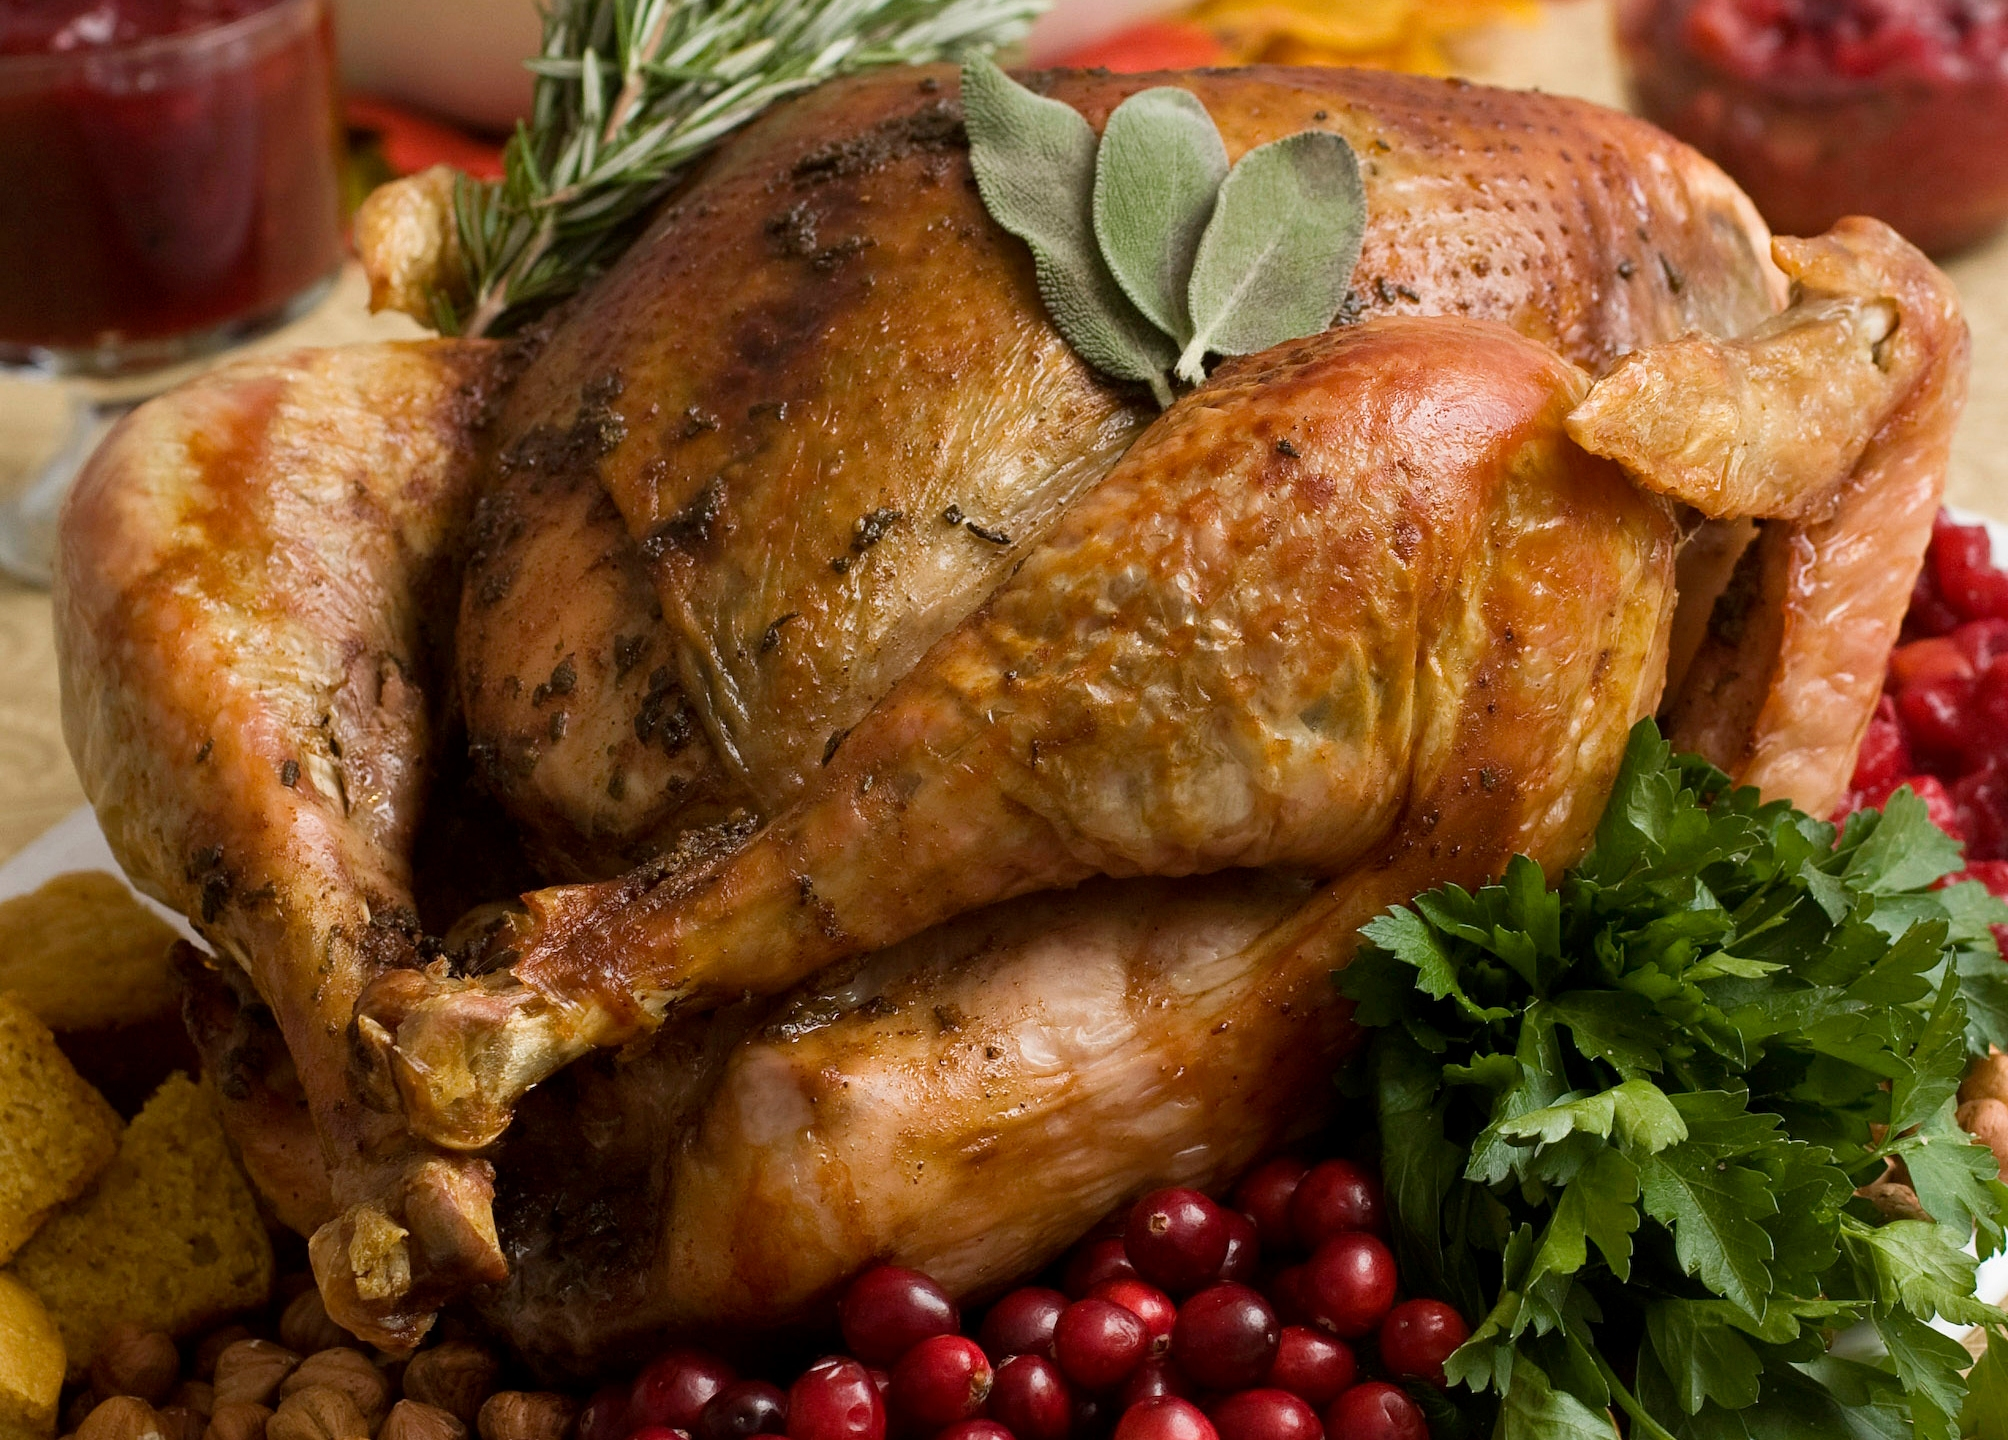 Now that stomachs have passed the overly stuffed with Christmas prepared meal phase, you may want to take pause before throwing away any uneaten food in the trash.